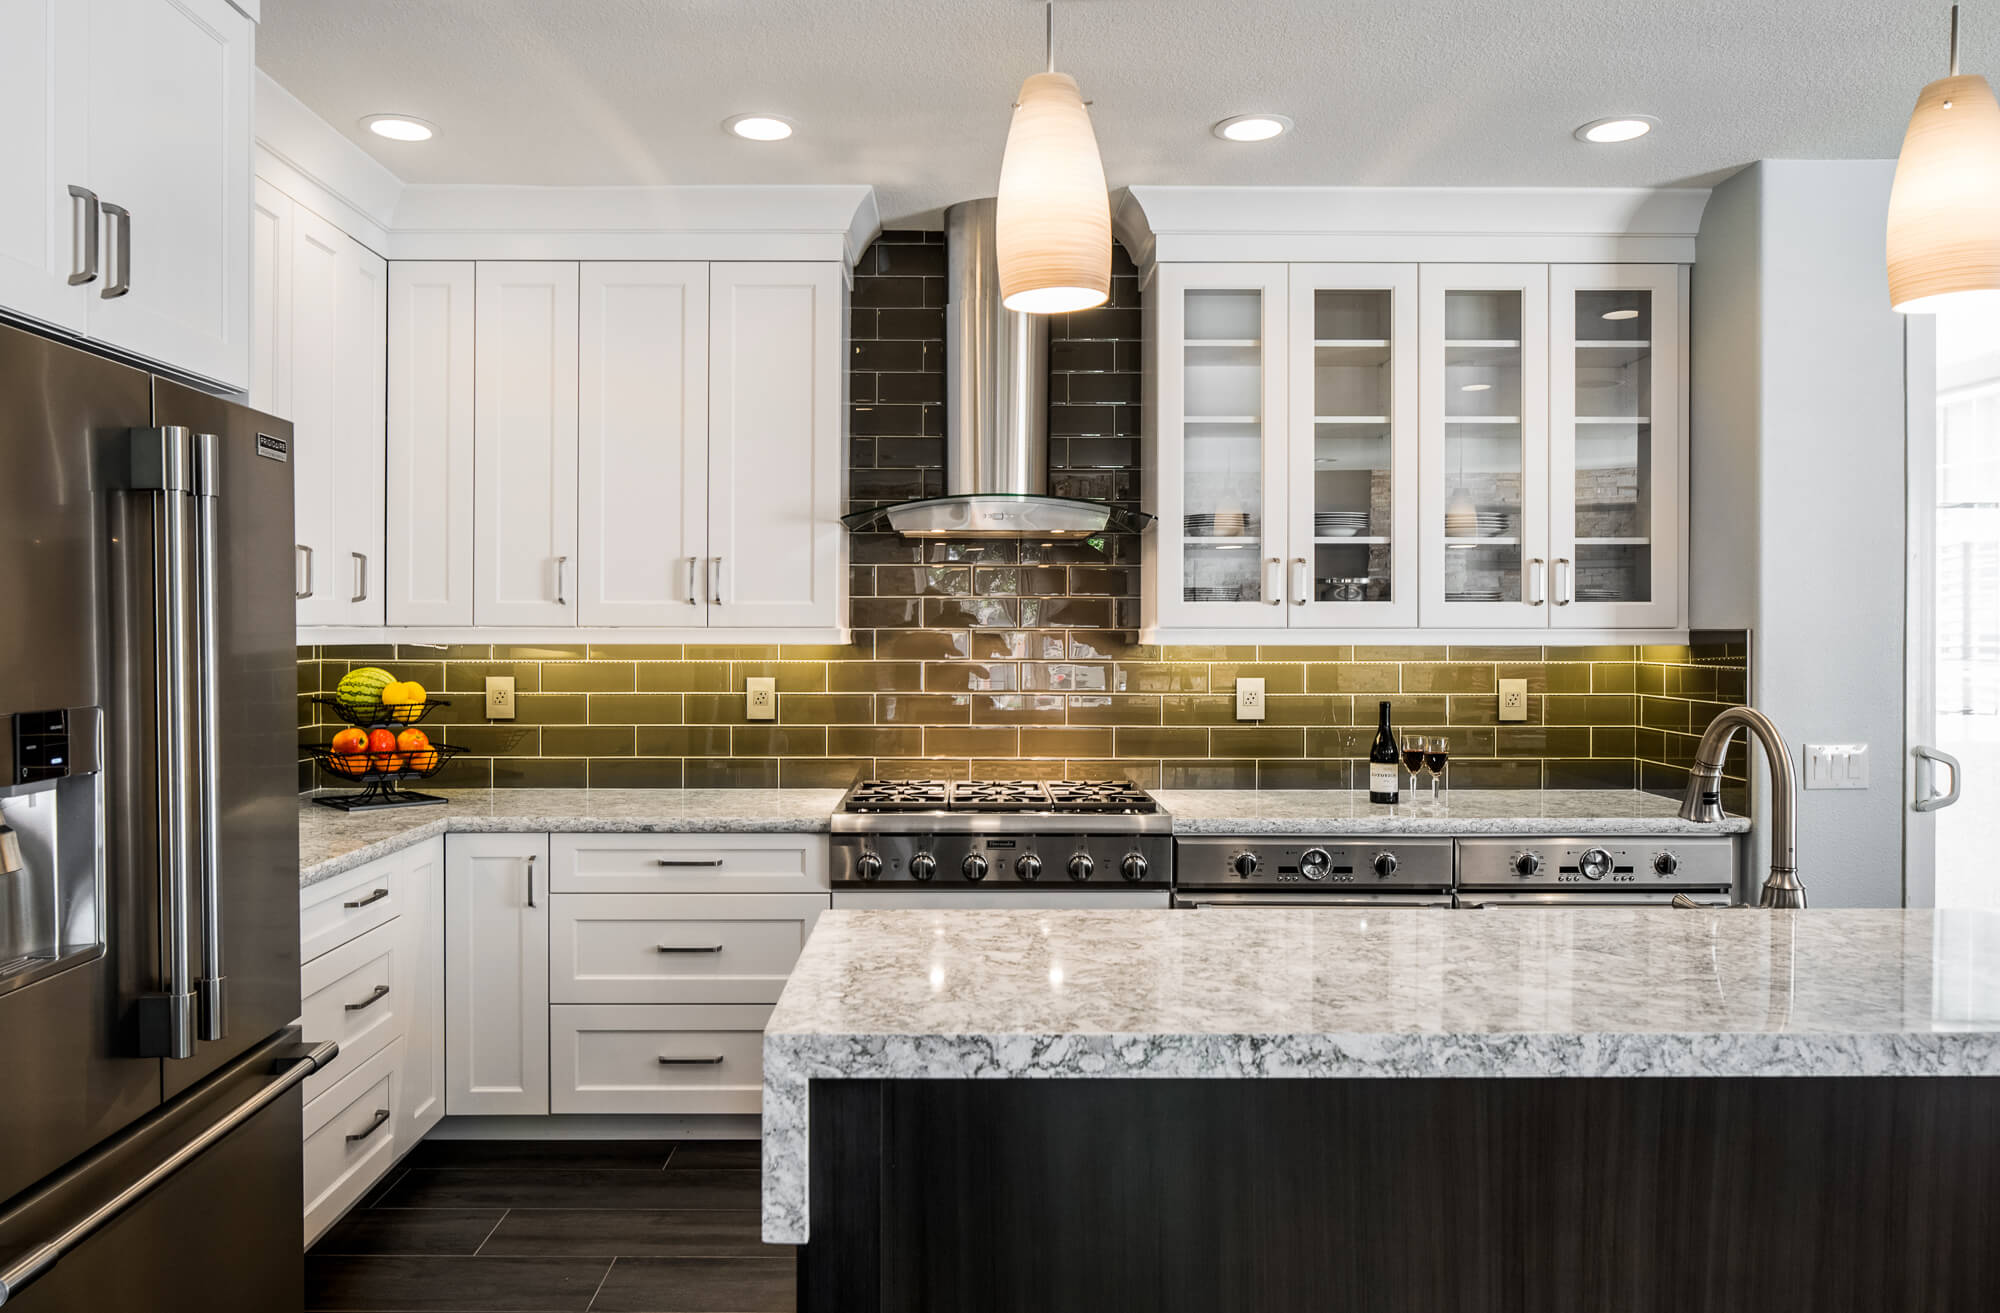 kitchen remodel must-haves | sea pointe construction